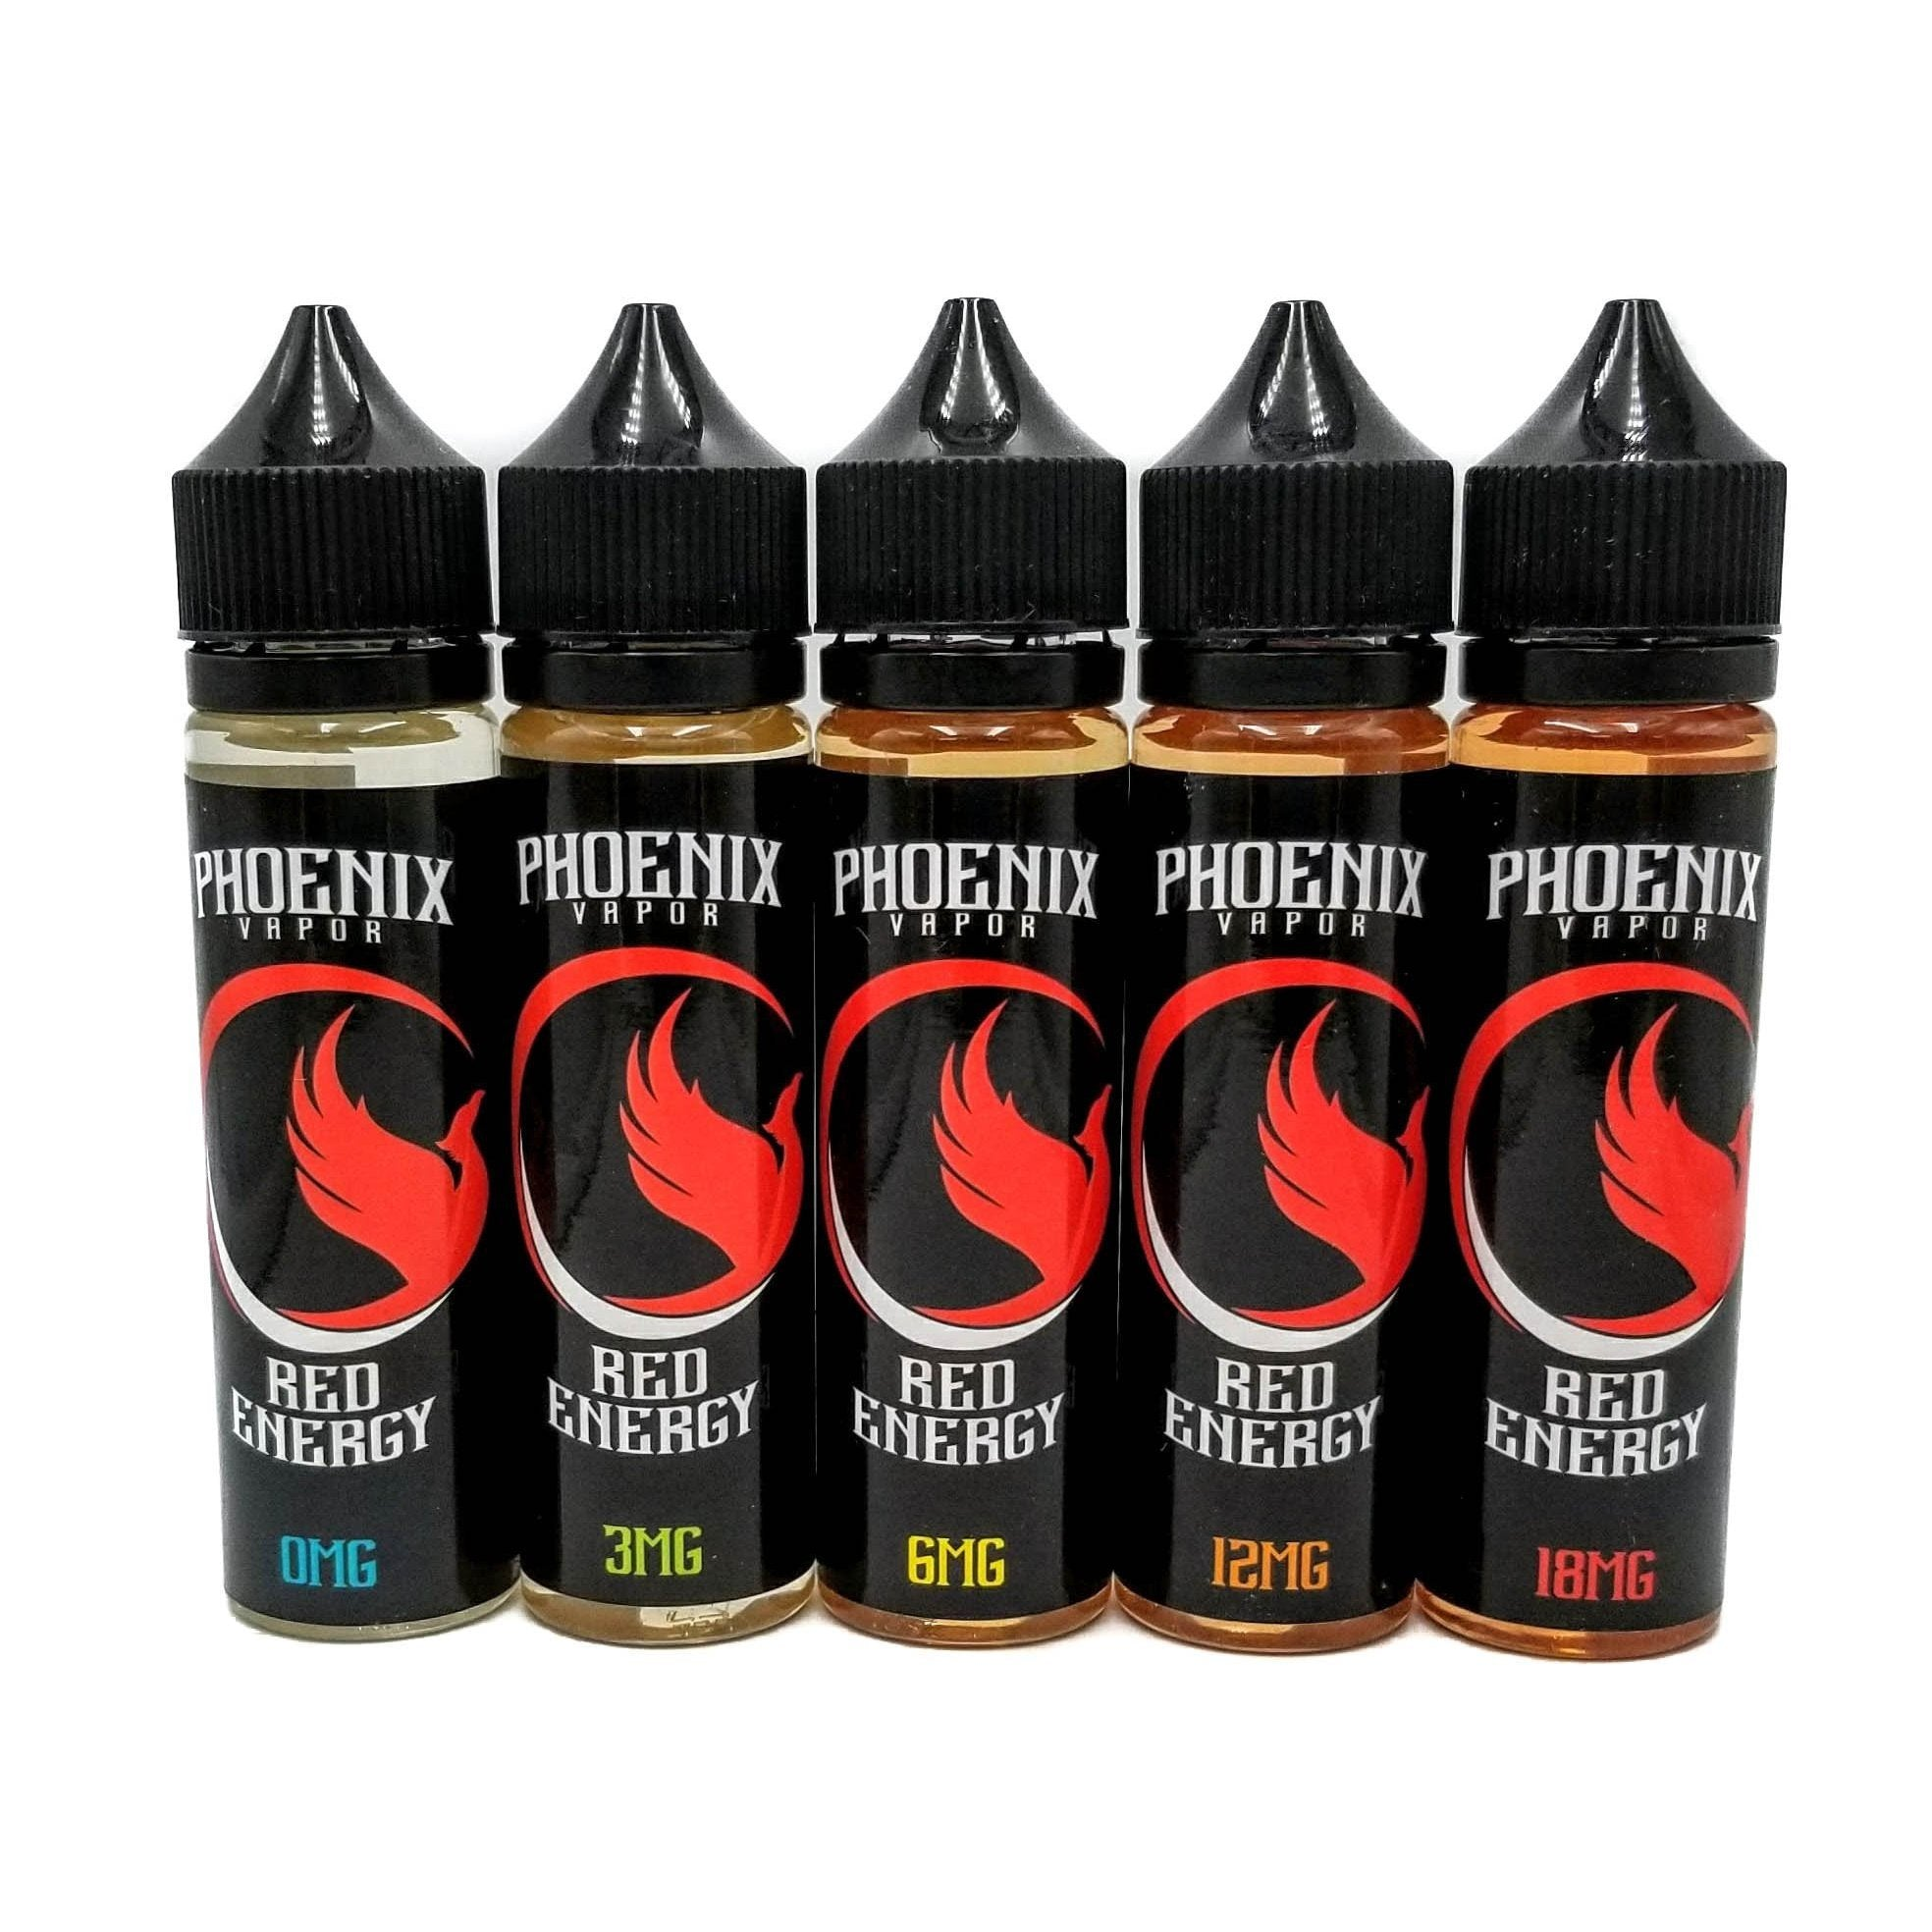 Red Energy by Phoenix Vapor